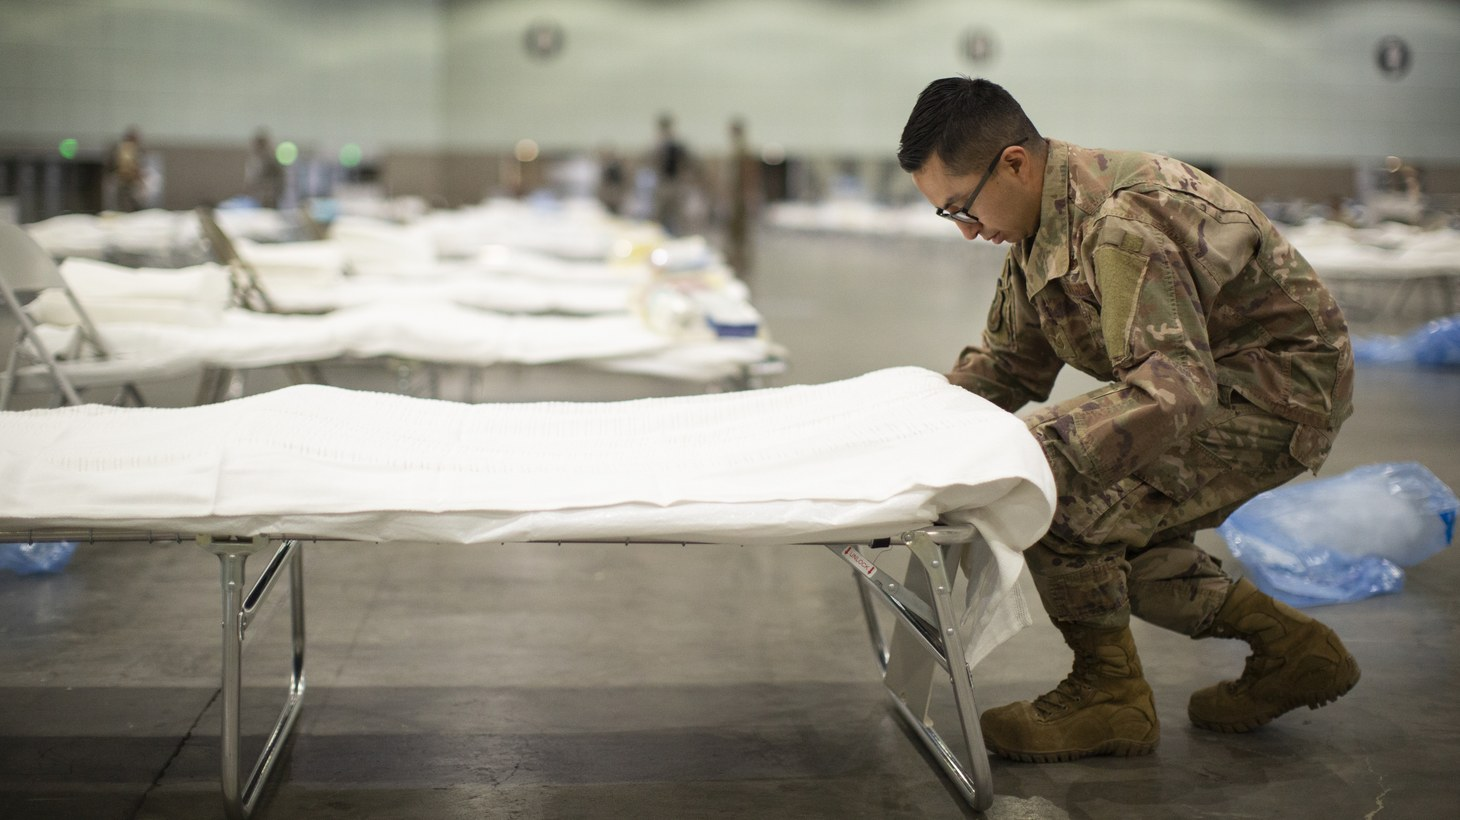 A member of the California National Guard puts sheets on a hospital bed while setting up a Federal Medical Station inside the Los Angeles Convention Center, March 29, 2020.